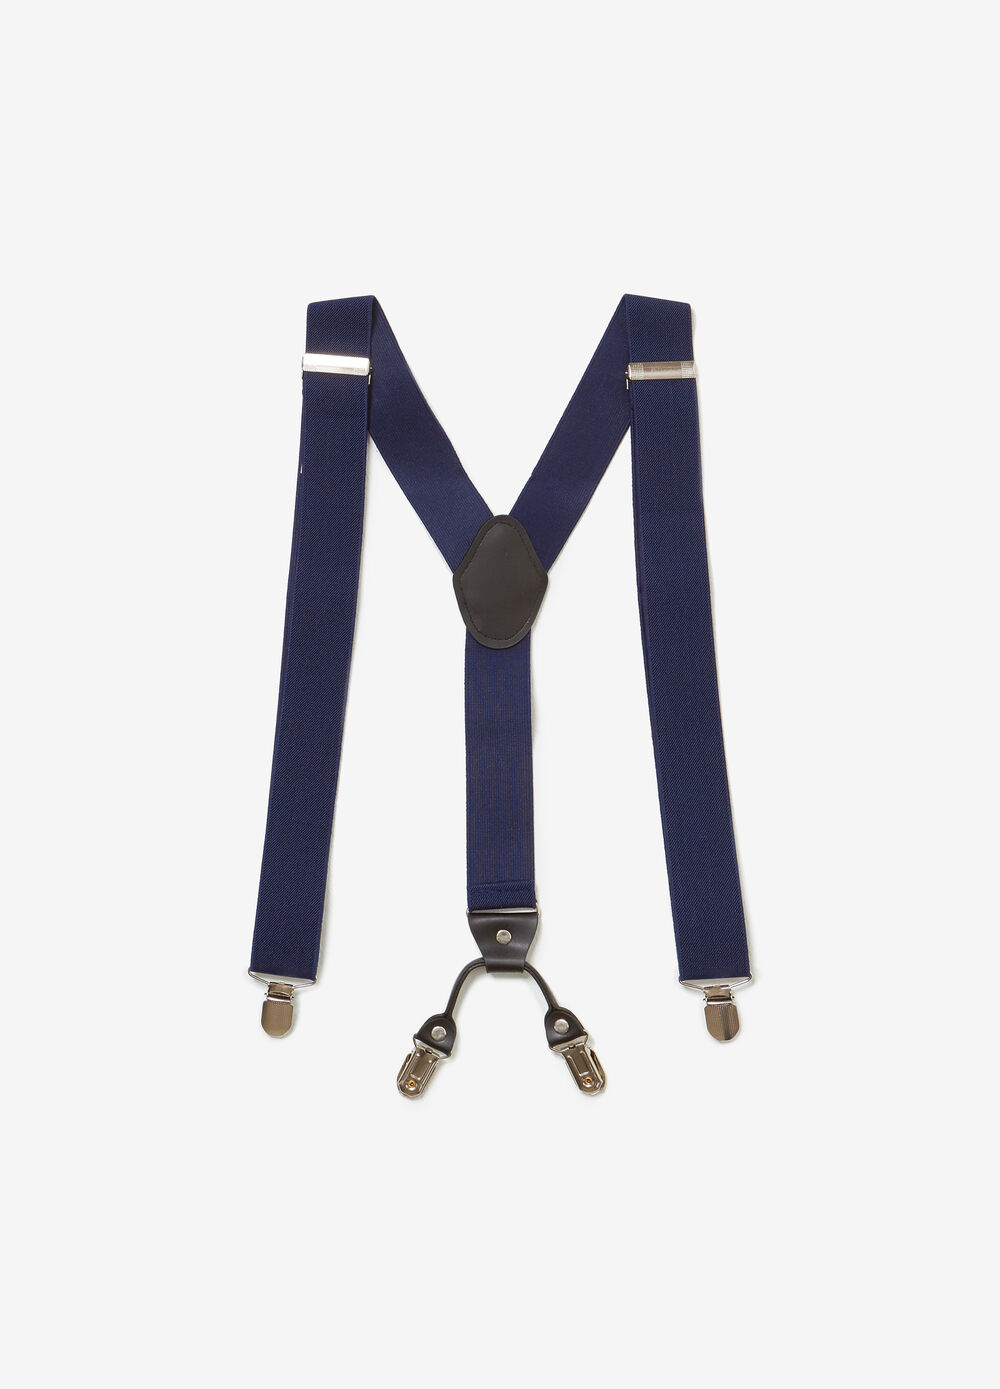 Adjustable braces with clip